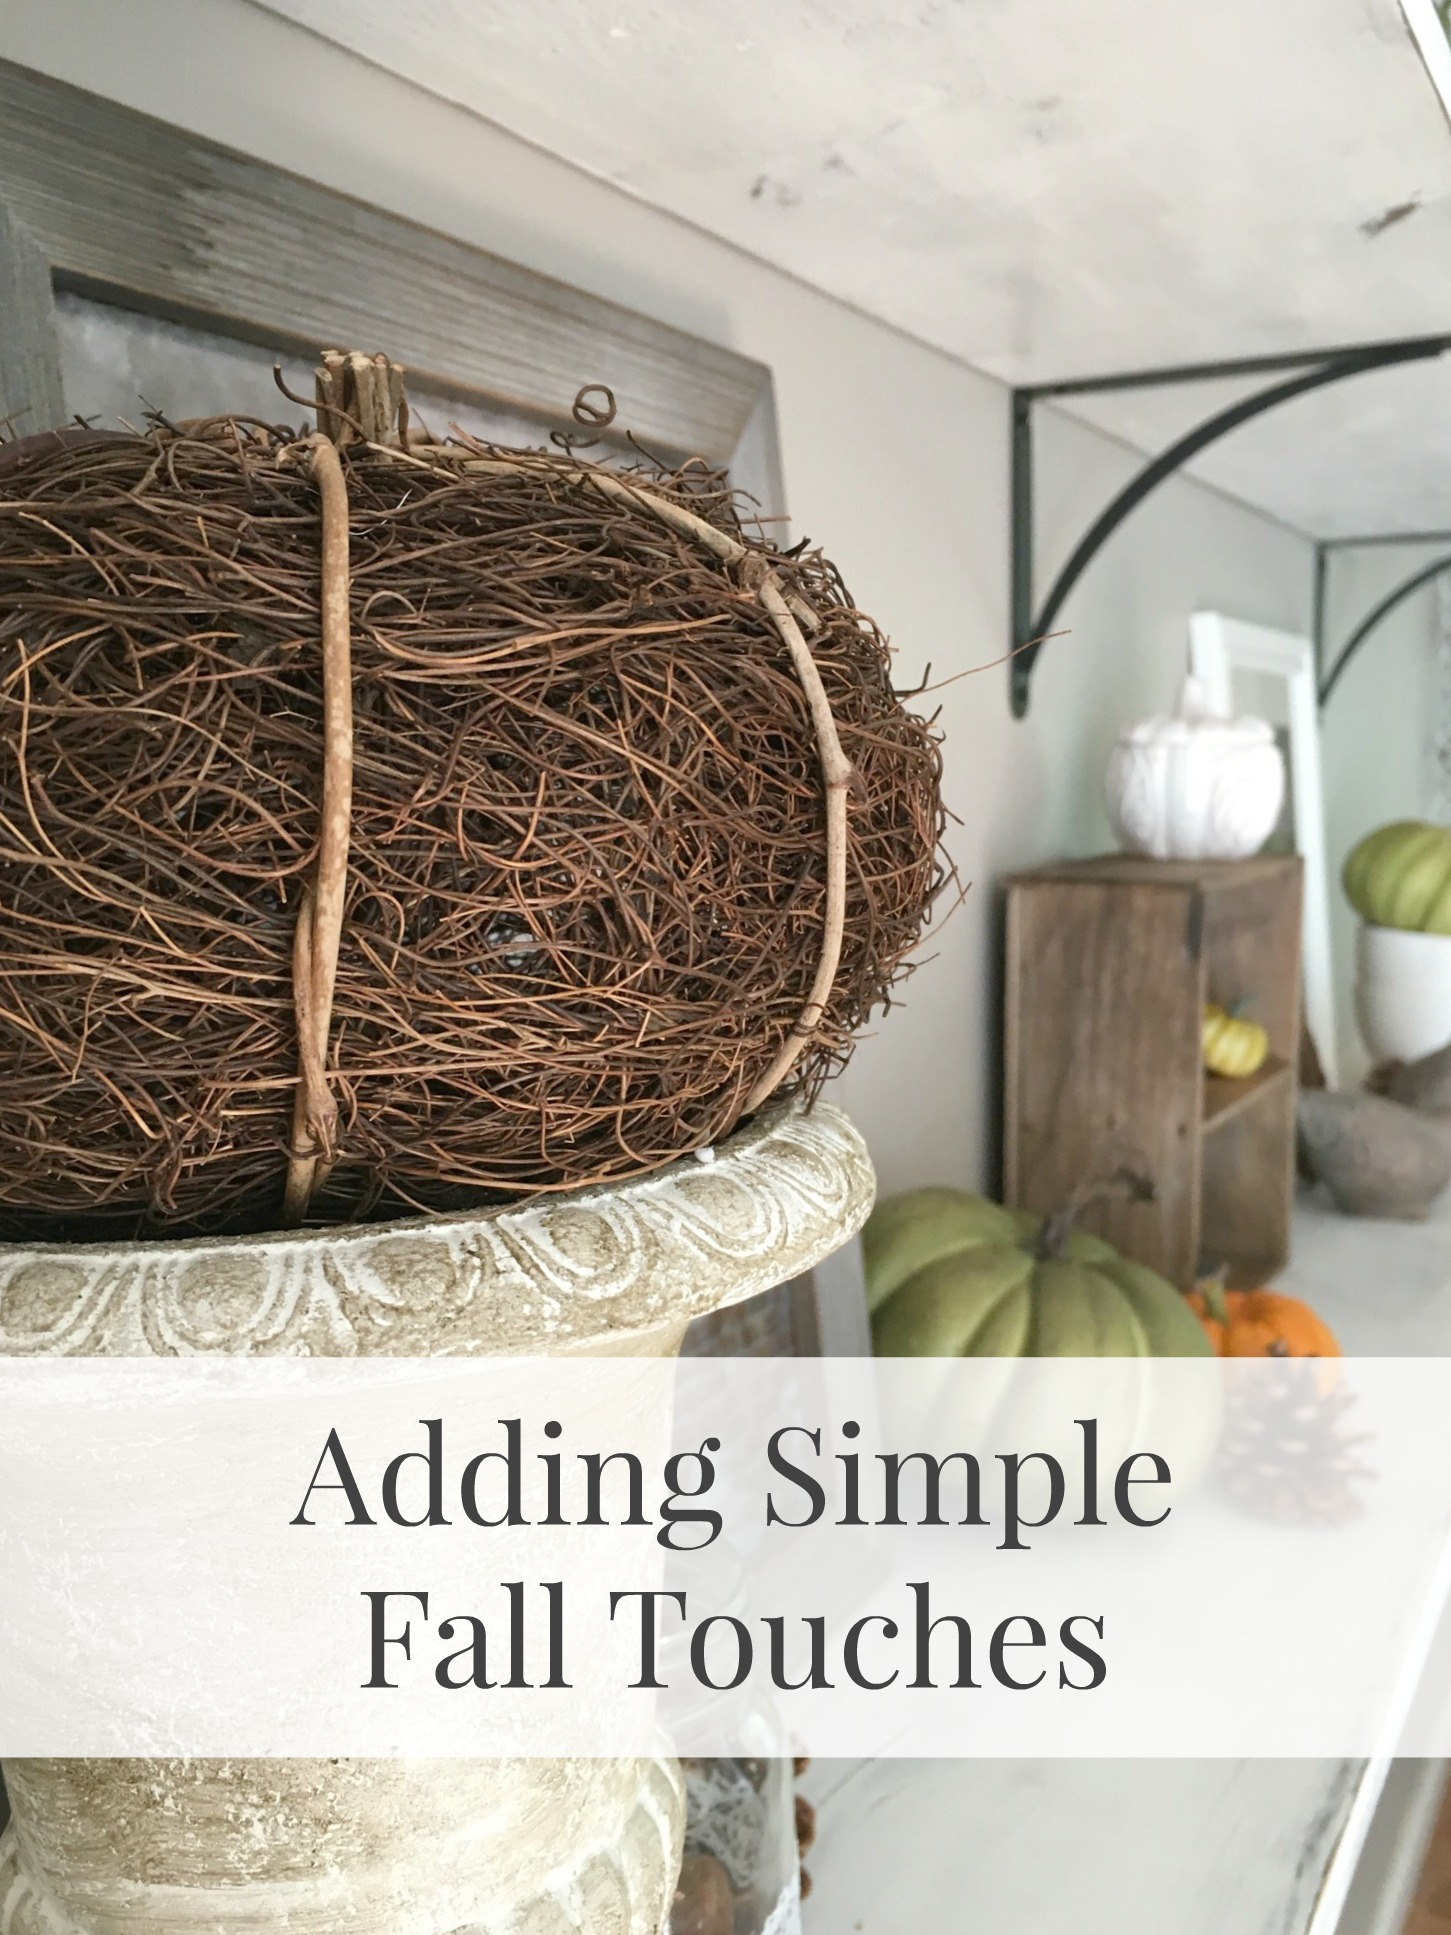 Adding simple Fall Touches